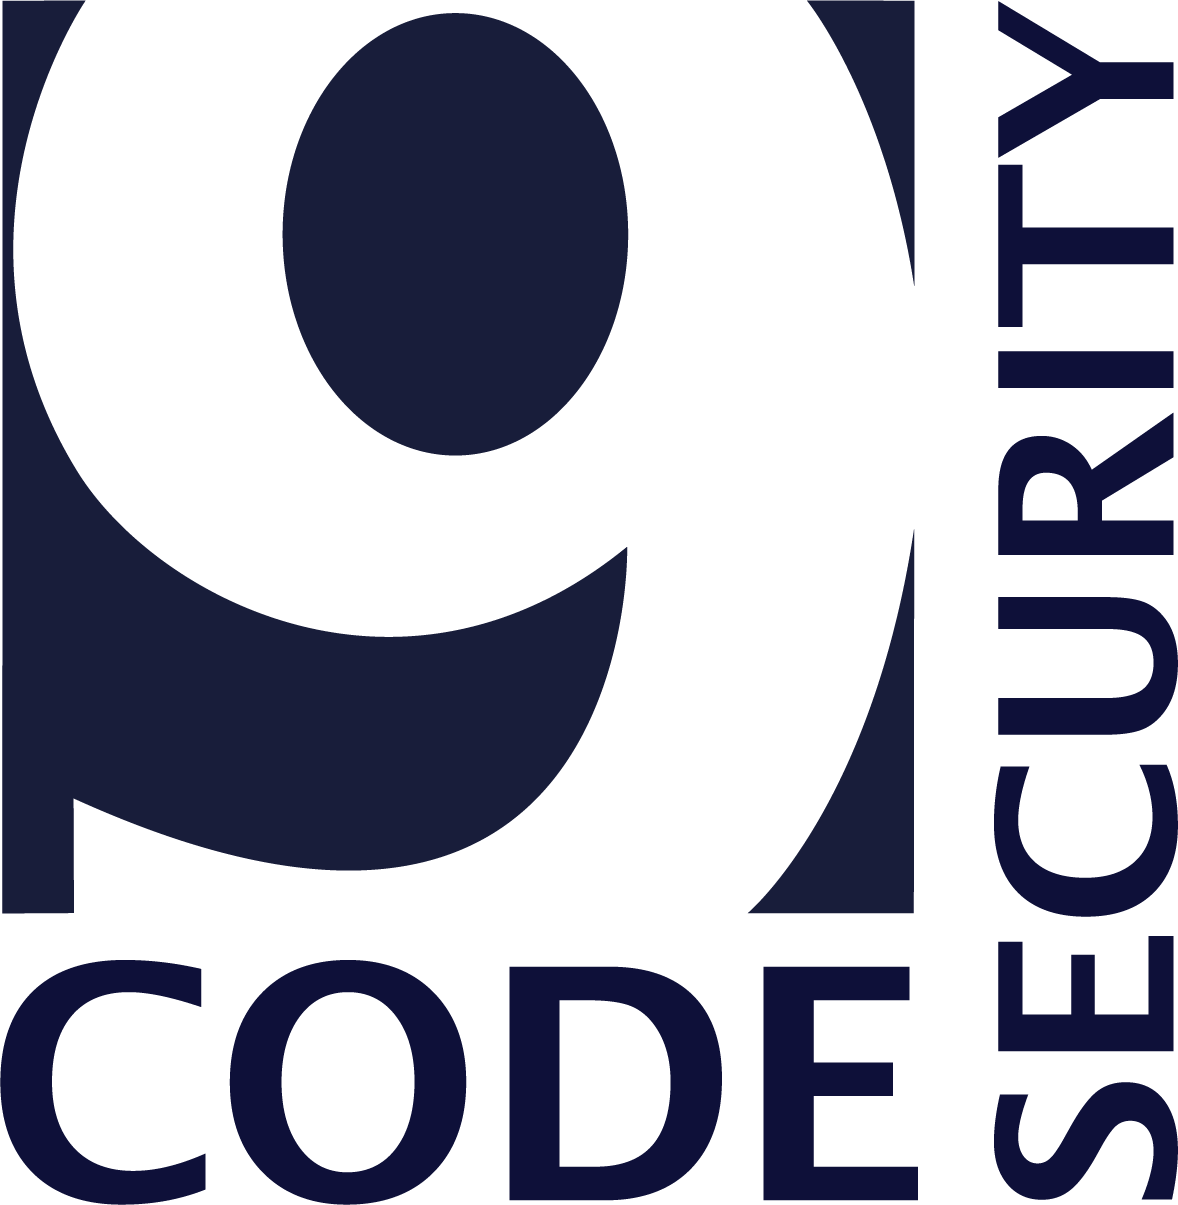 Code 9 Security Ltd | Hampshire's leading provider of licensed security services.